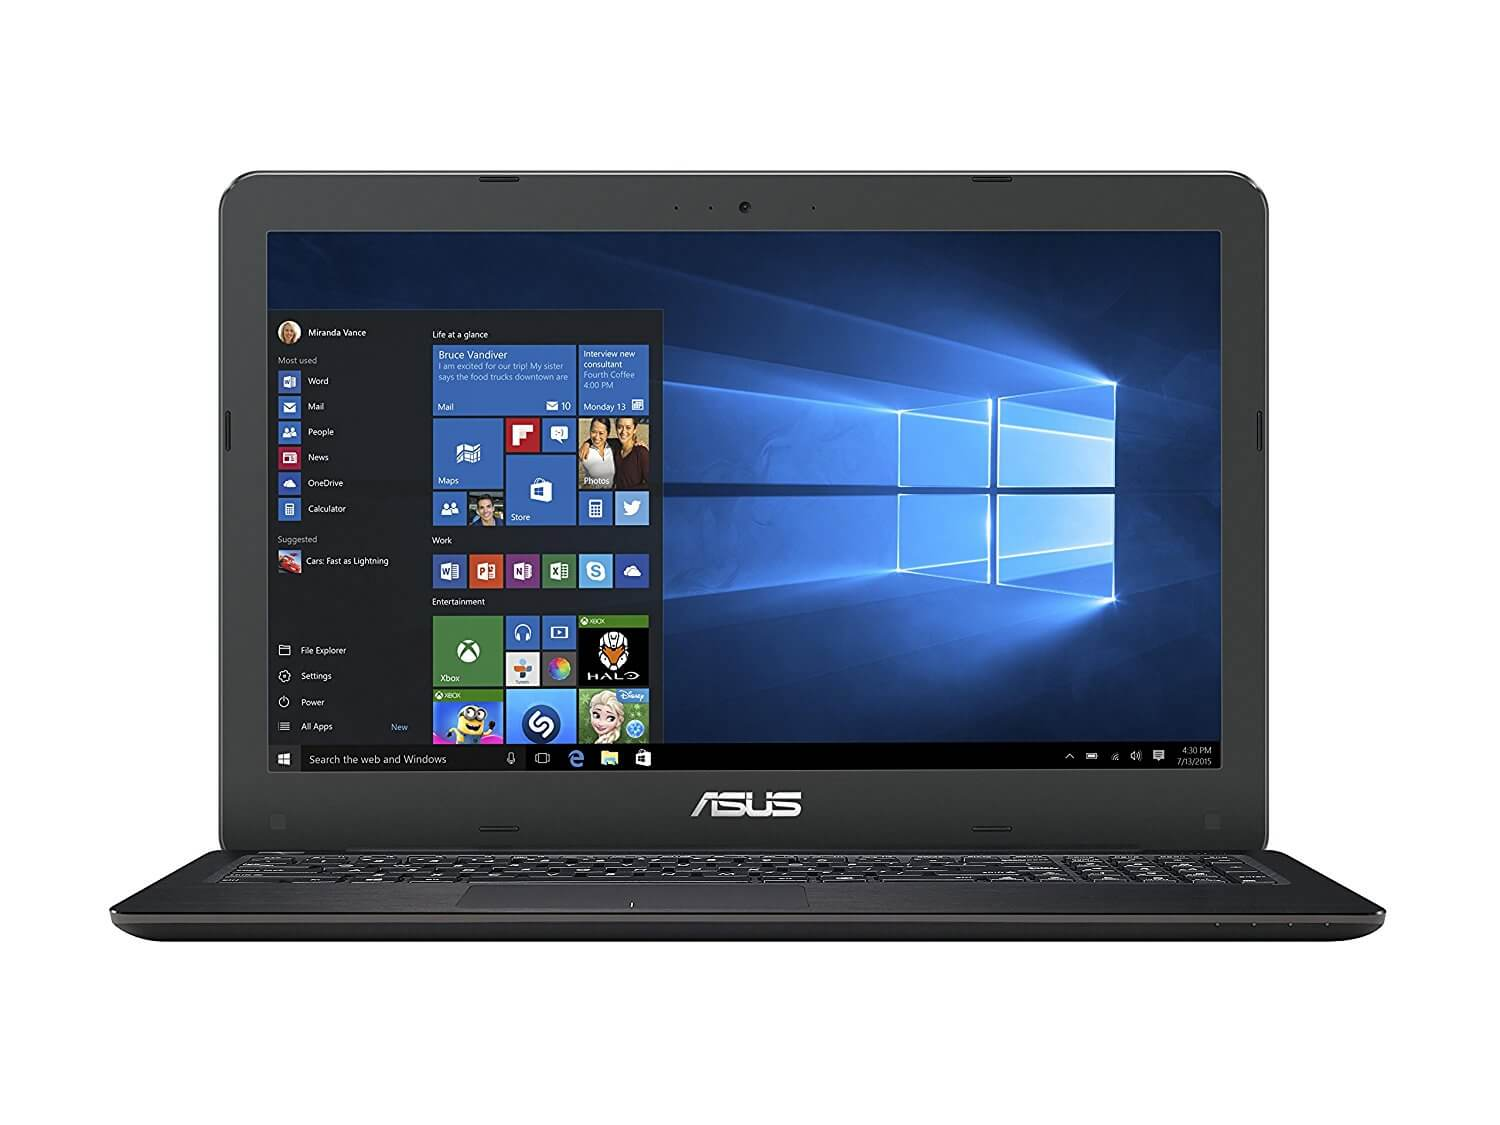 ASUS VivoBook K556UQ-DM1024T budget gaming laptop under 900 with dedicated NVIDIA GeForce GT940MX Graphics Card